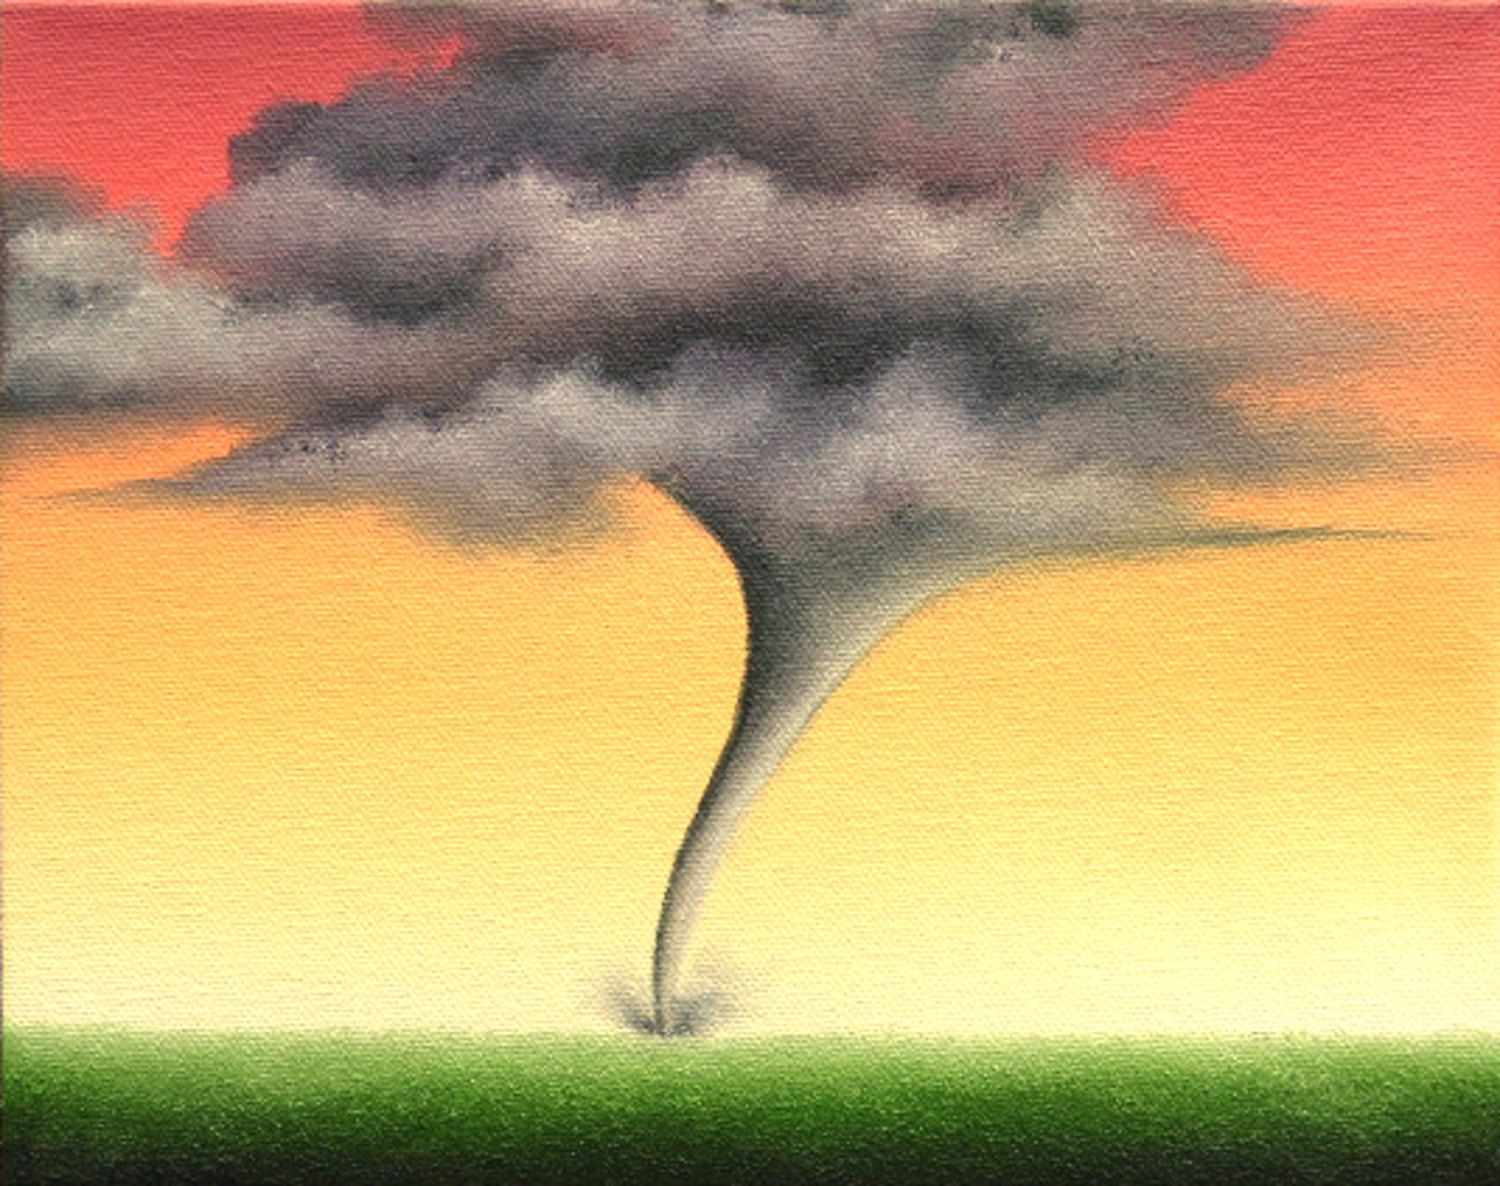 Tornado Art Print, Stormy Landscape Wall Decor, Giclee Print of ...